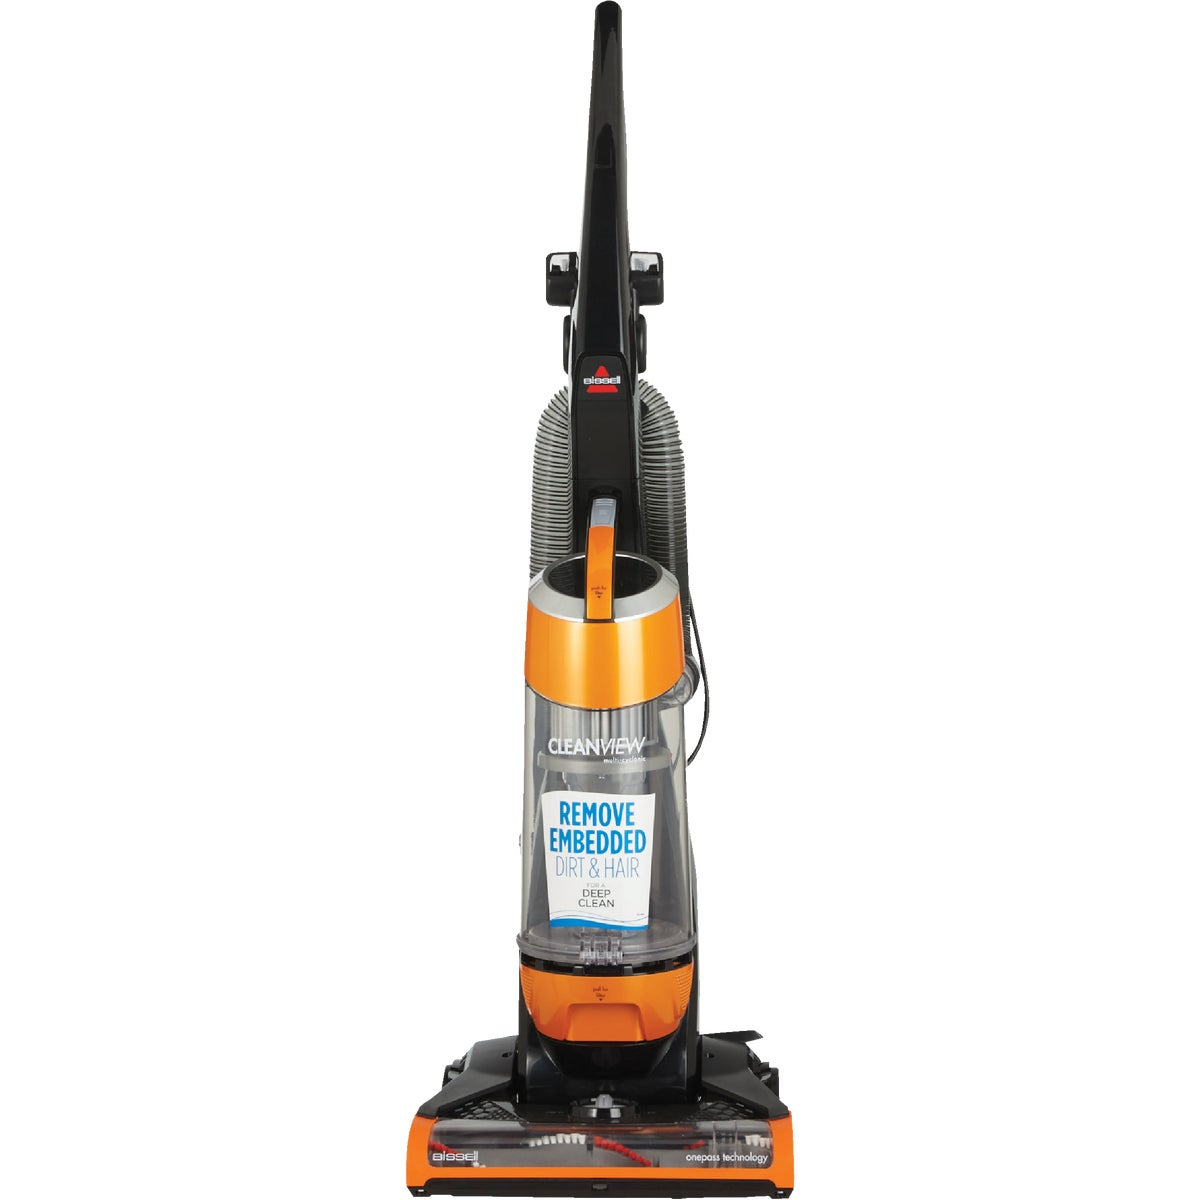 CLN VIEW ONE PASS VACUUM - 9595 by Bissell Homecare Int